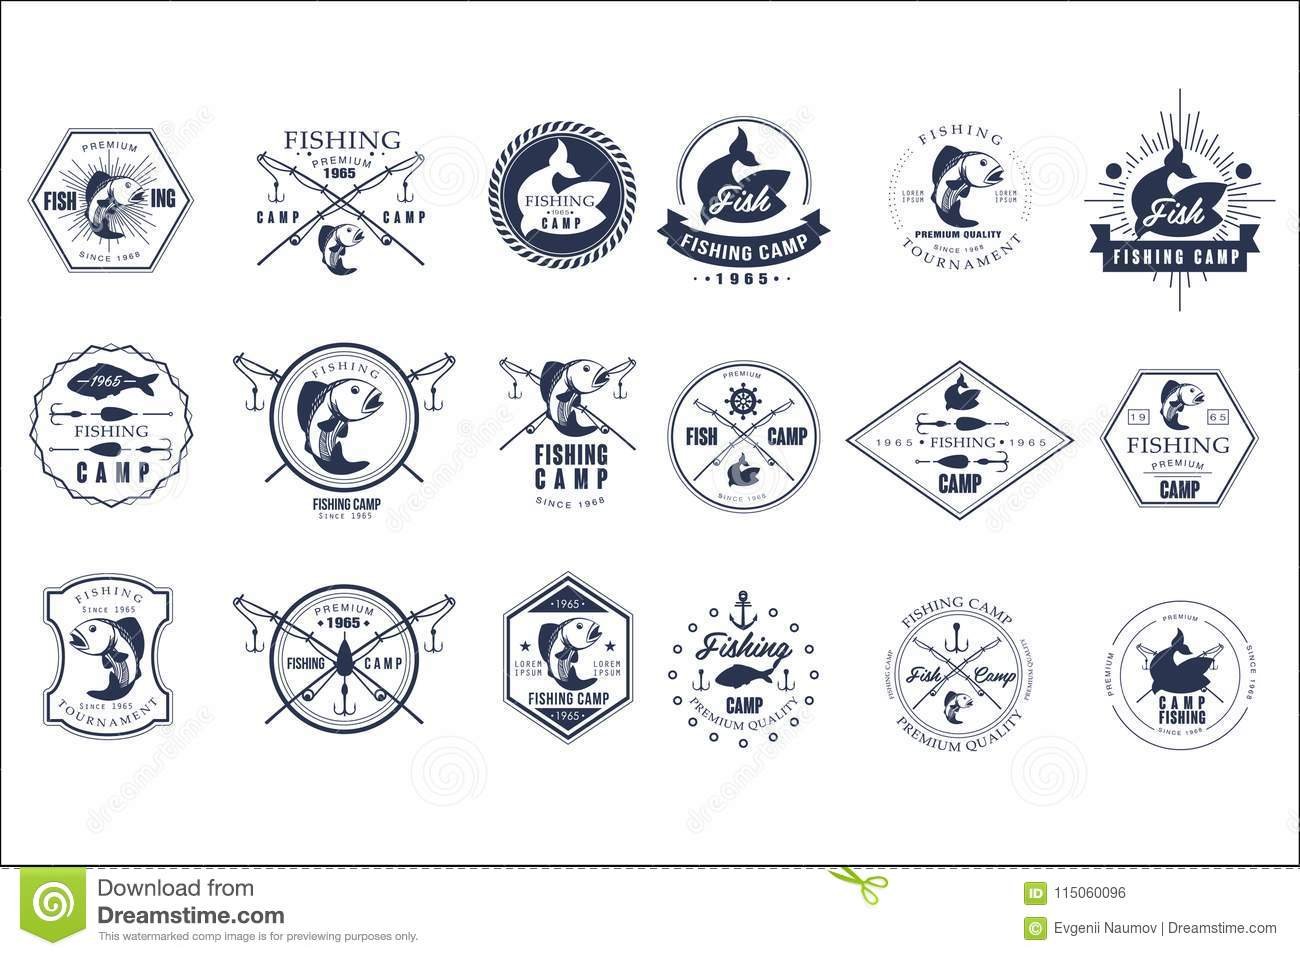 Vector set of vintage fishing camp logo or tournament emblem templates. Original monochrome labels with fishes and fish